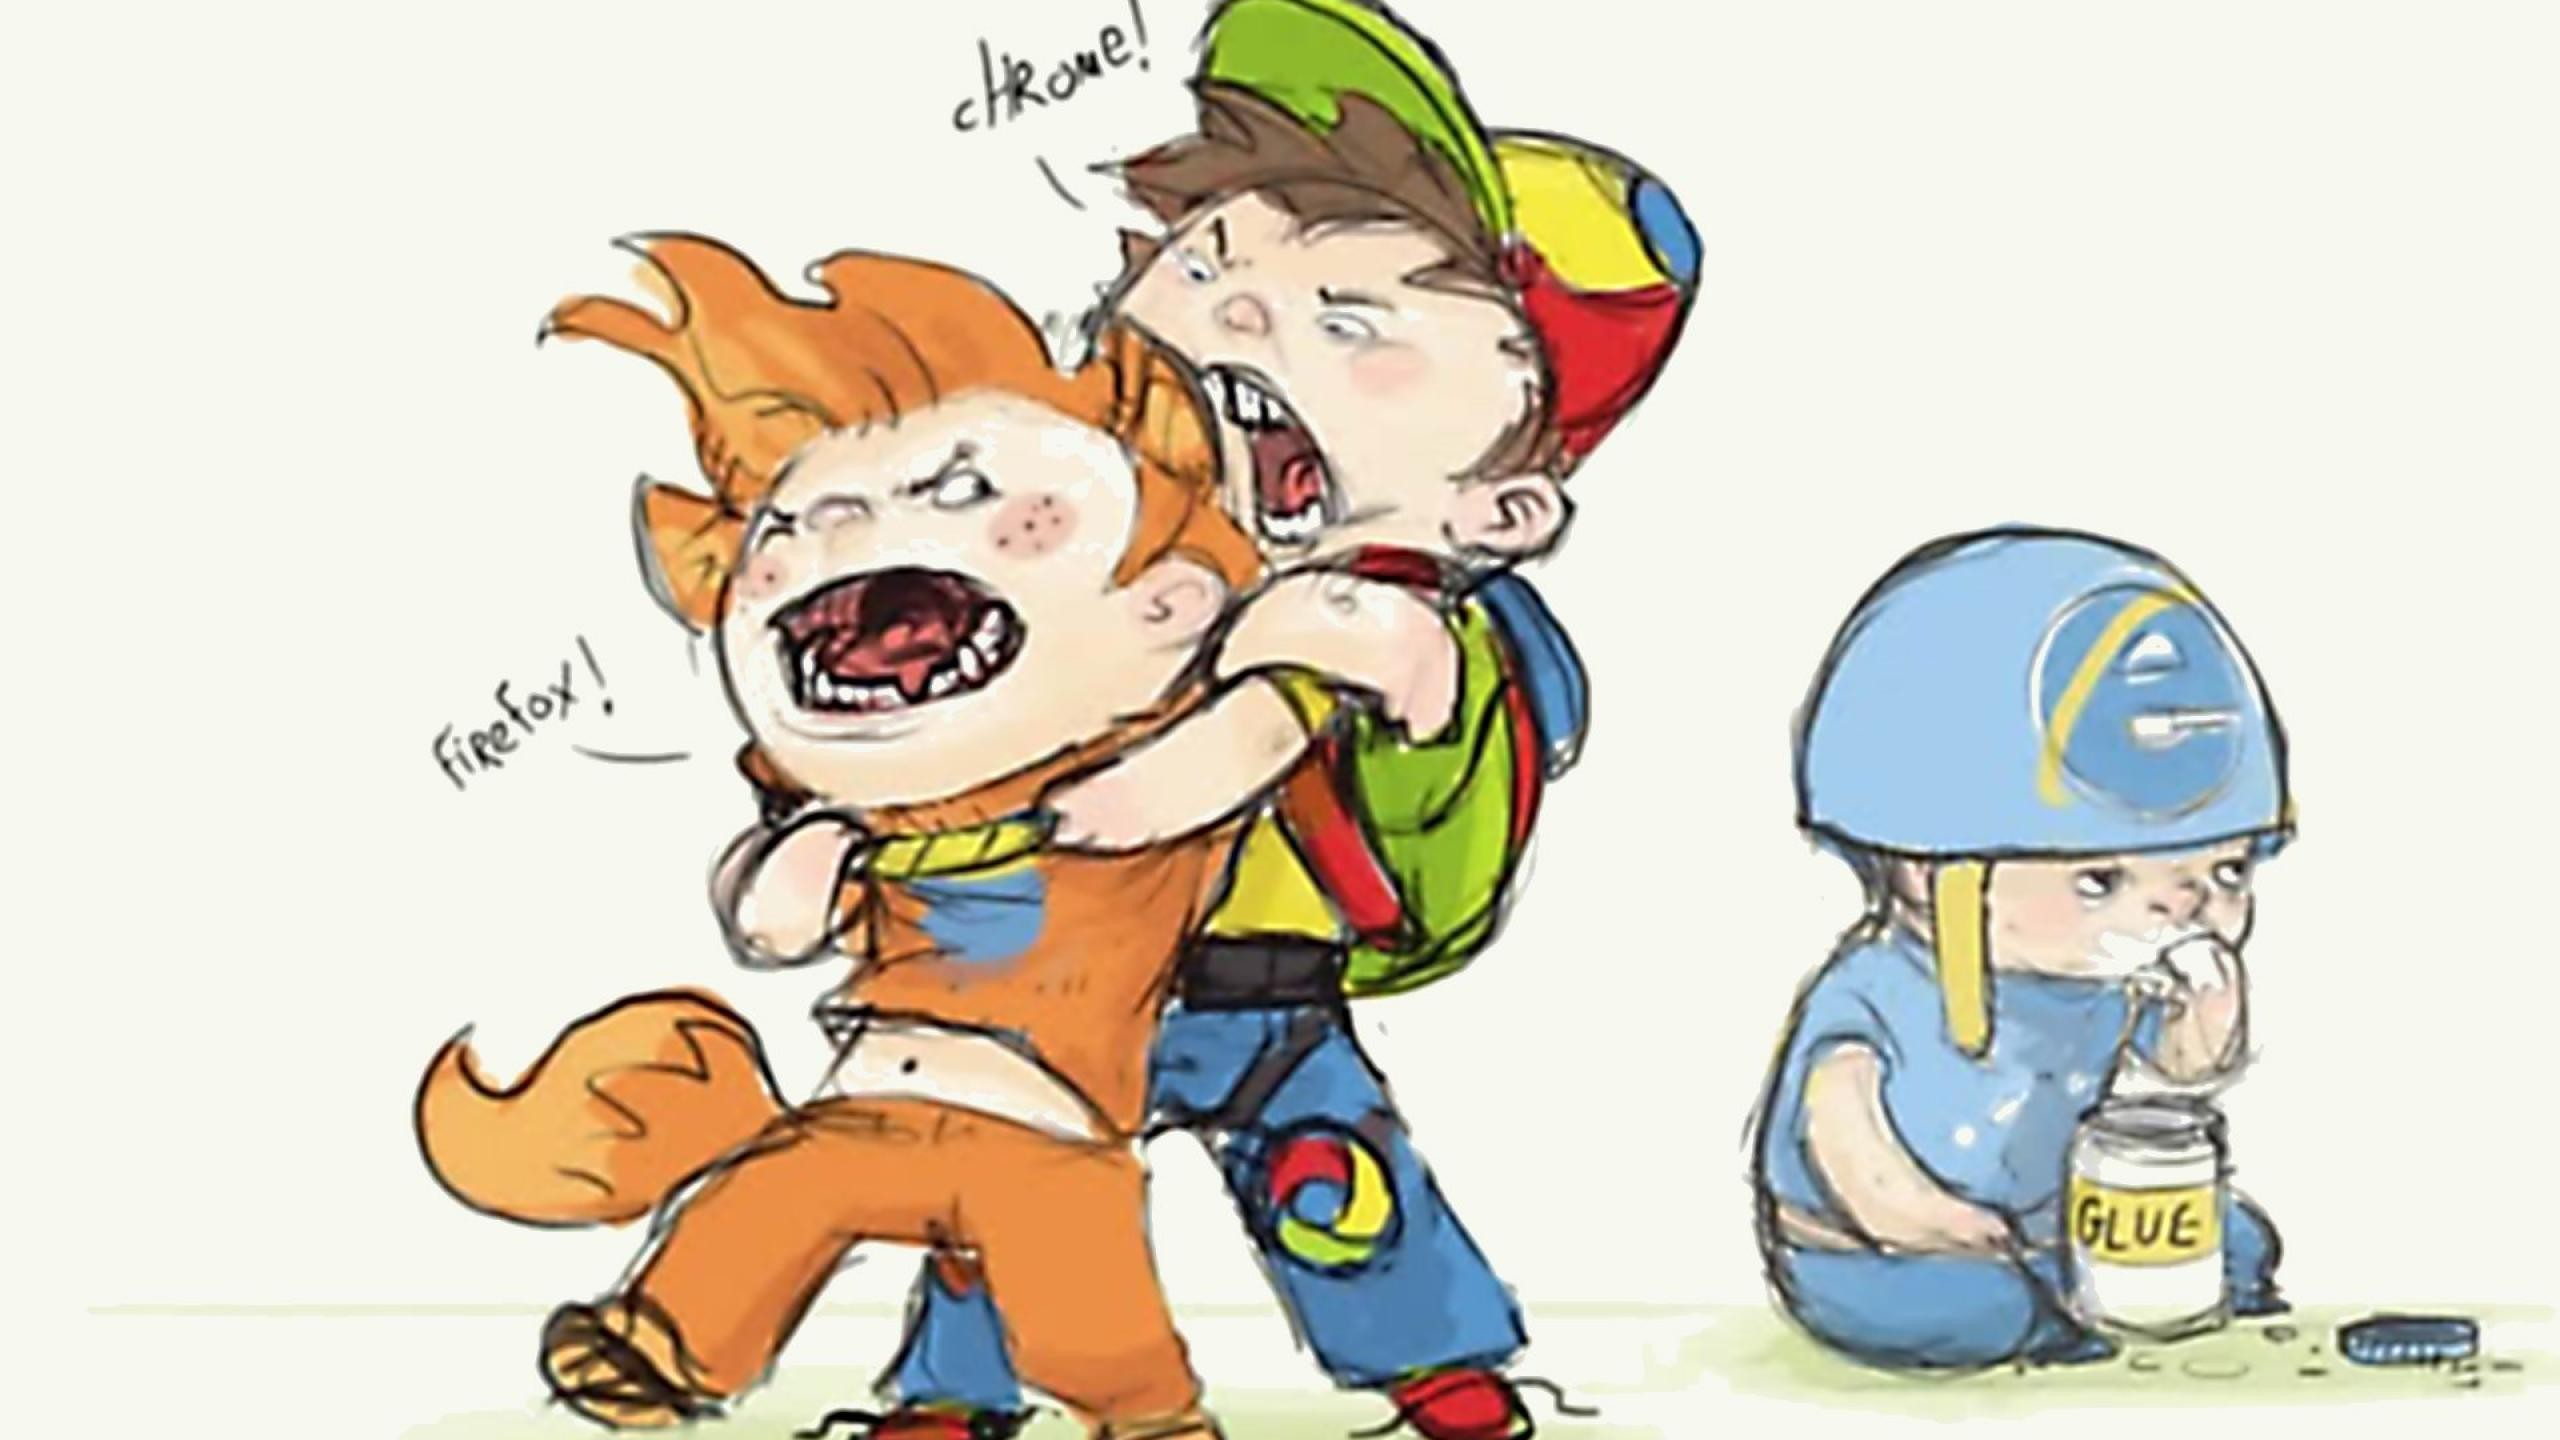 chrome_vs_firefox_internetexplorer_wallpaper